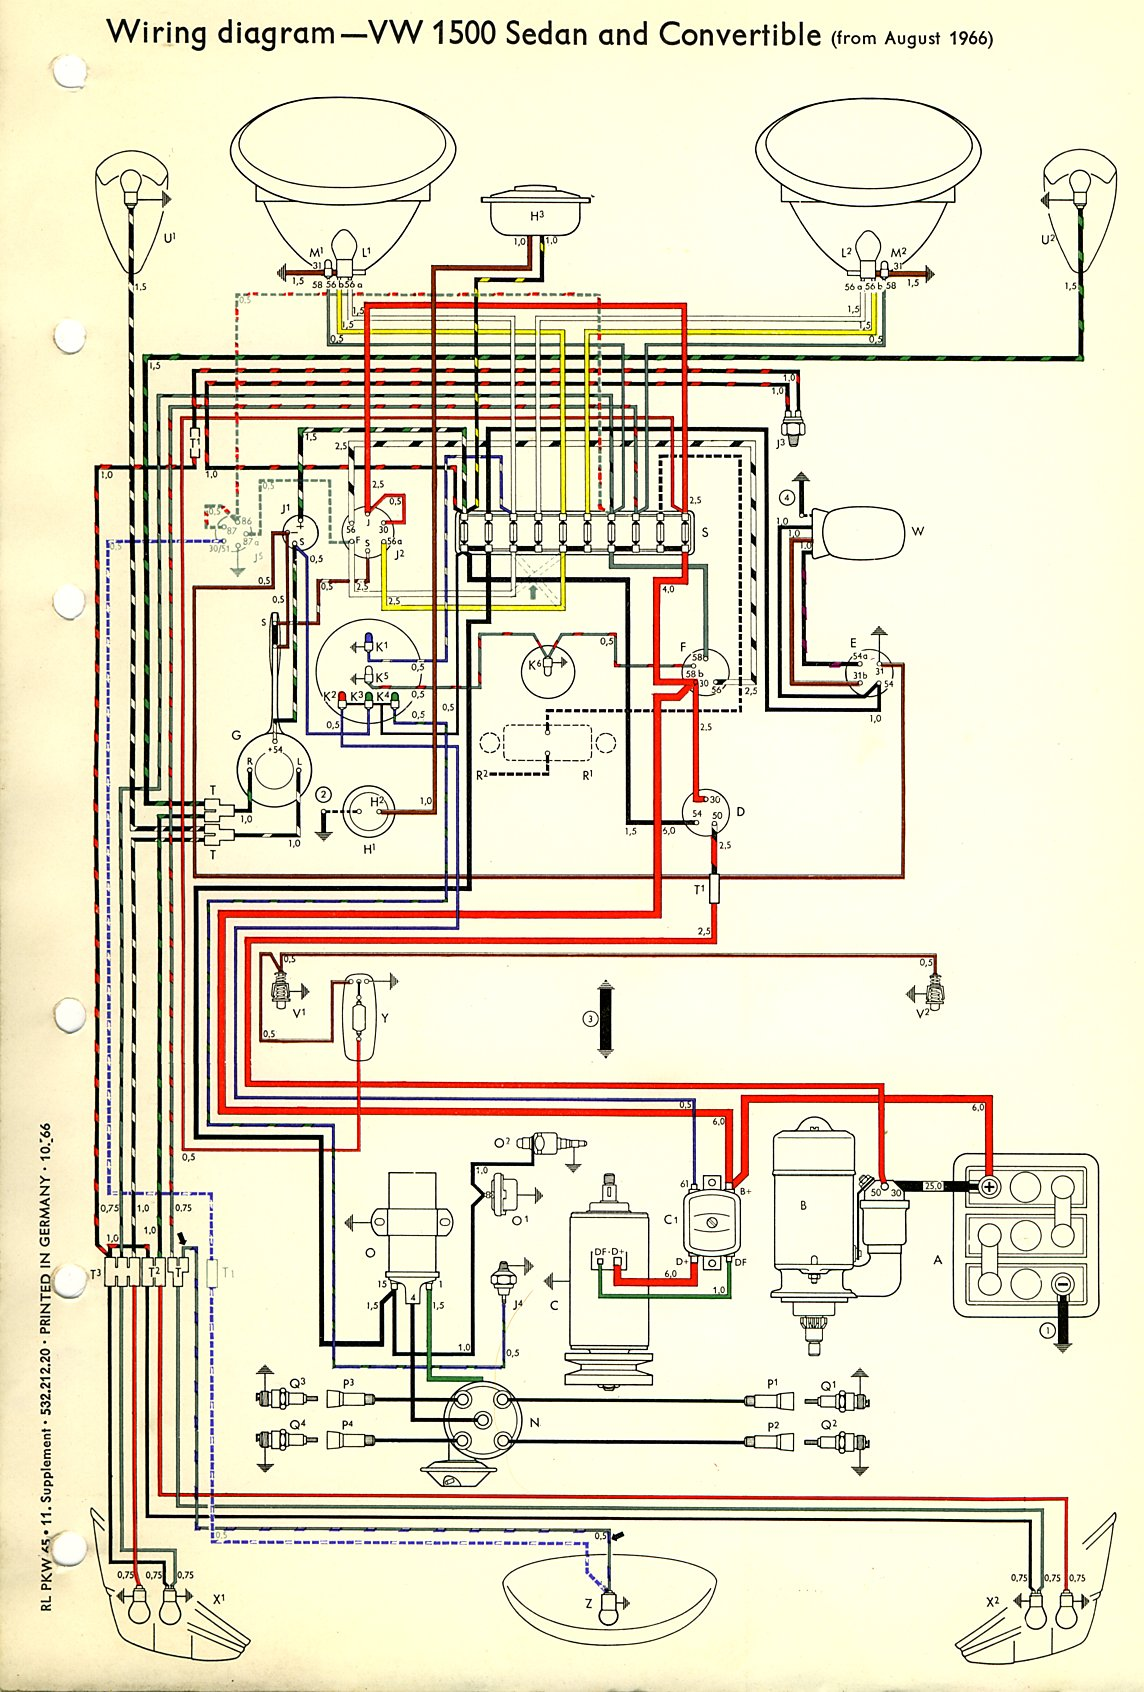 hight resolution of 1974 vw beetle wiring diagram completed wiring diagrams rh 35 schwarzgoldtrio de 1600cc vw engine diagram